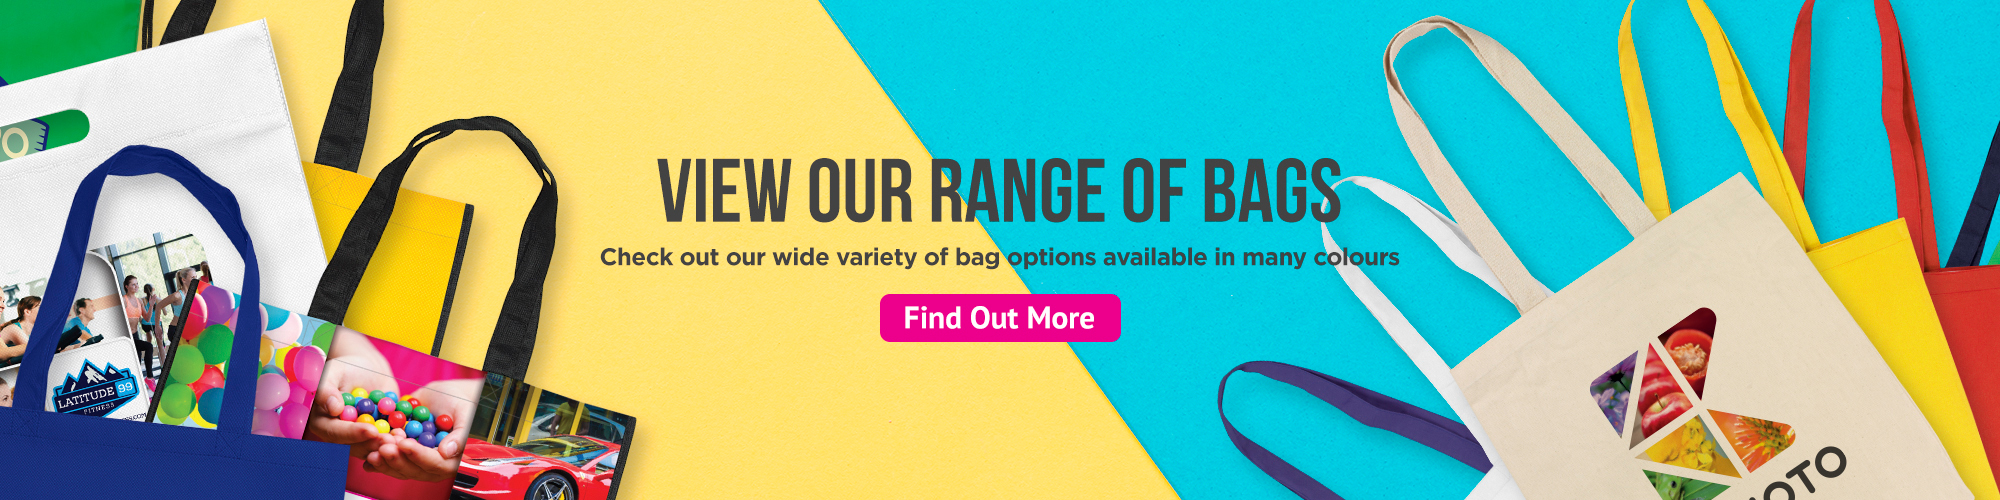 View our range of bags